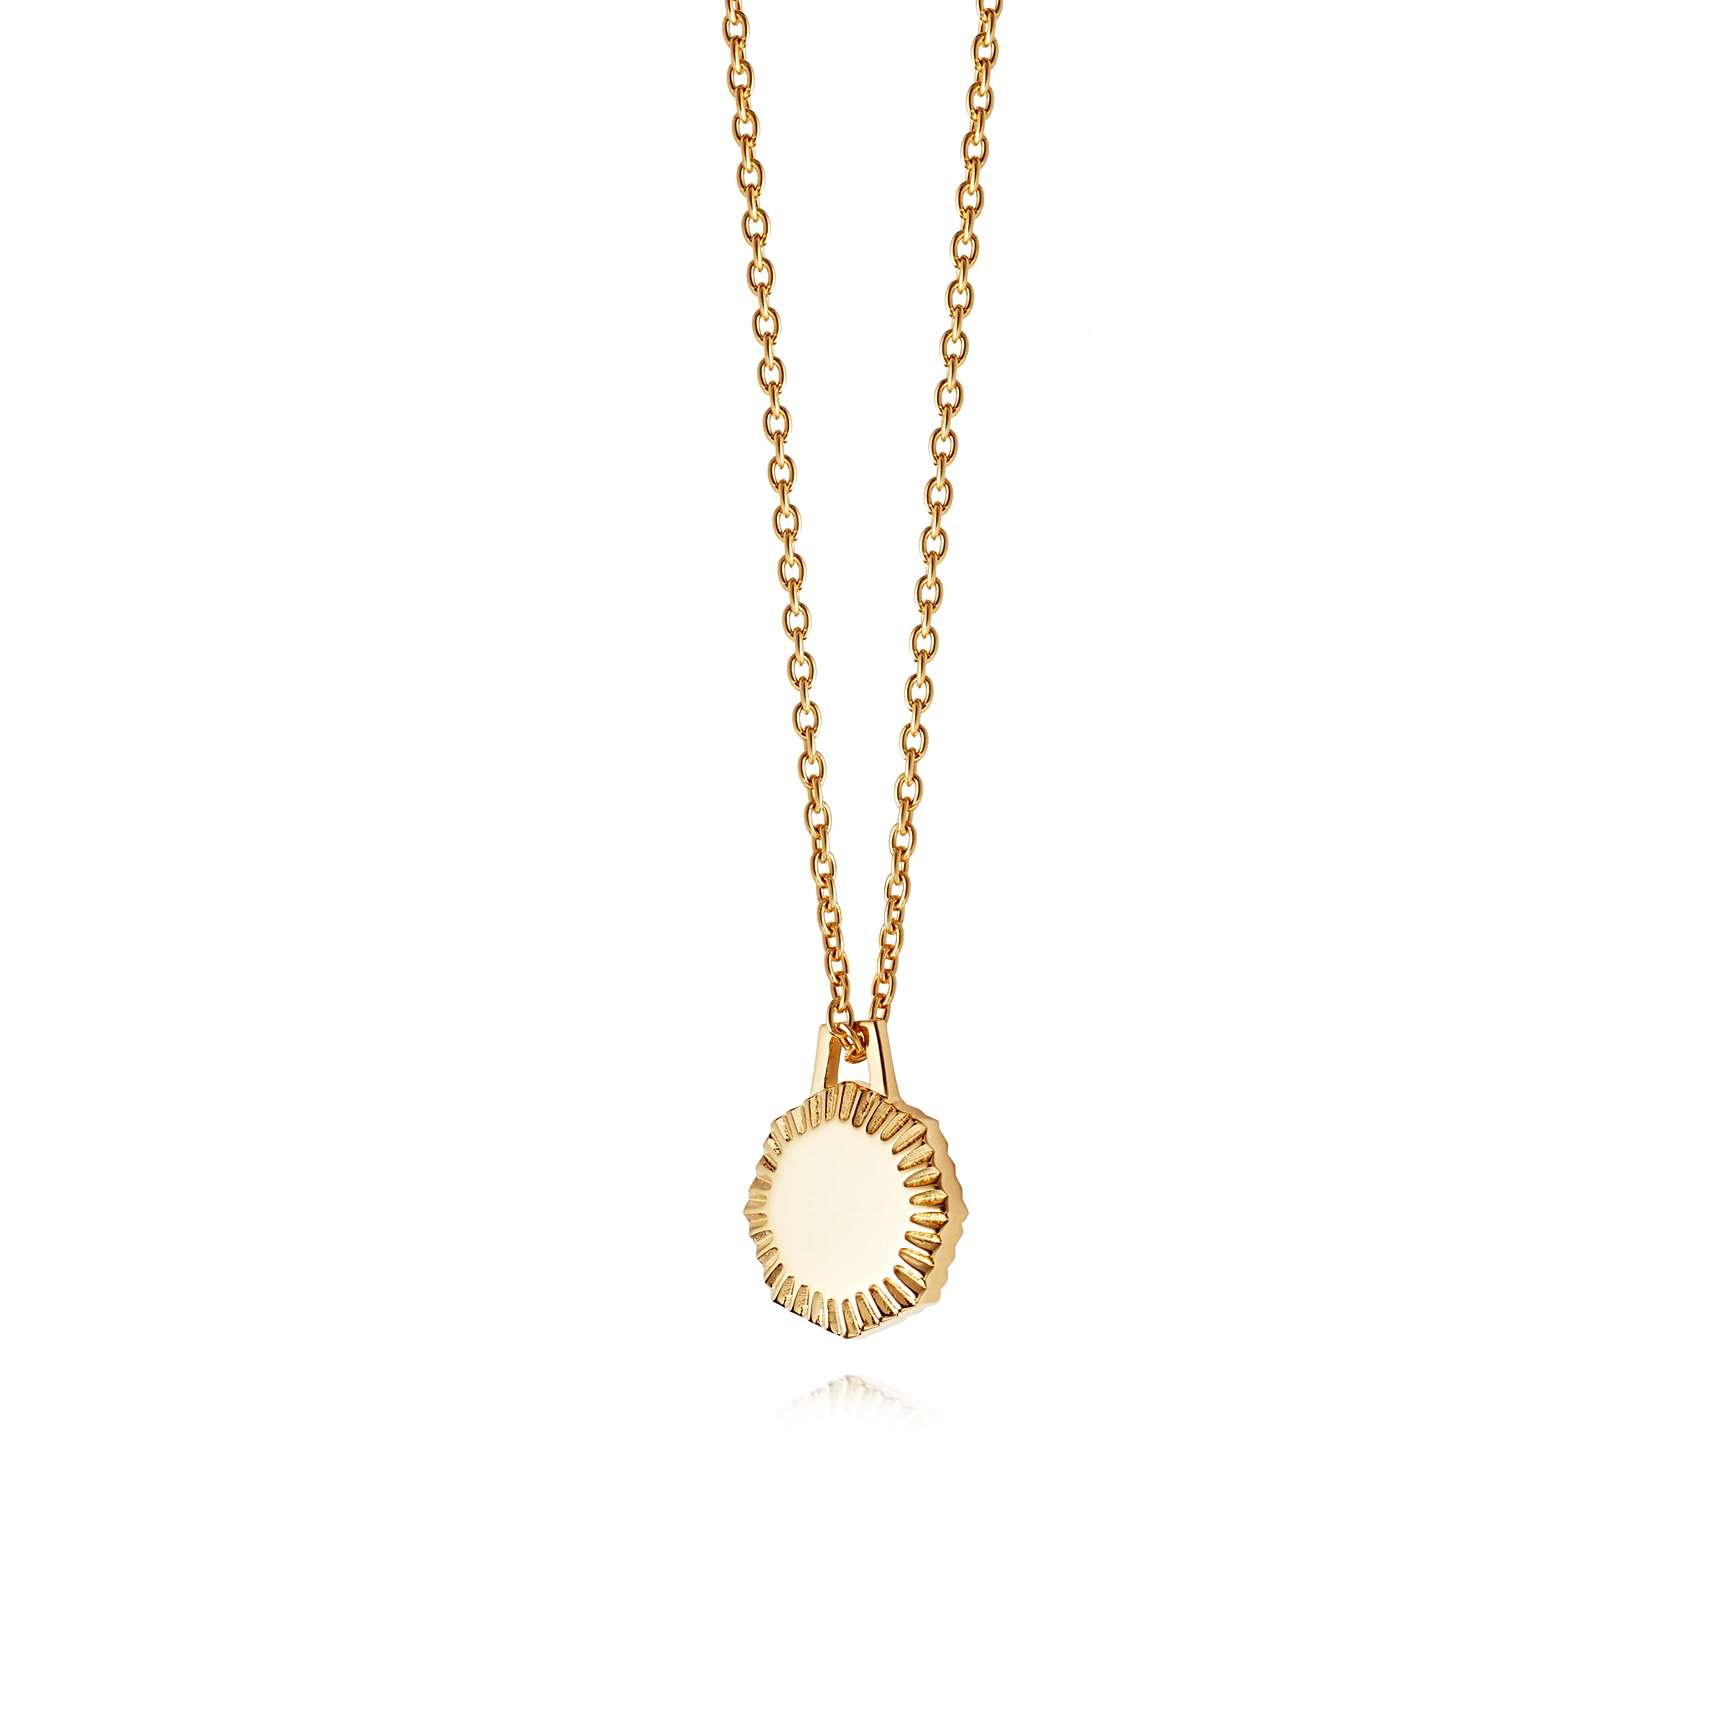 ESTÉE LALONDE MINI OCTAGONAL NECKLACE 18CT GOLD PLATE - Been lusting after this one for too long now…